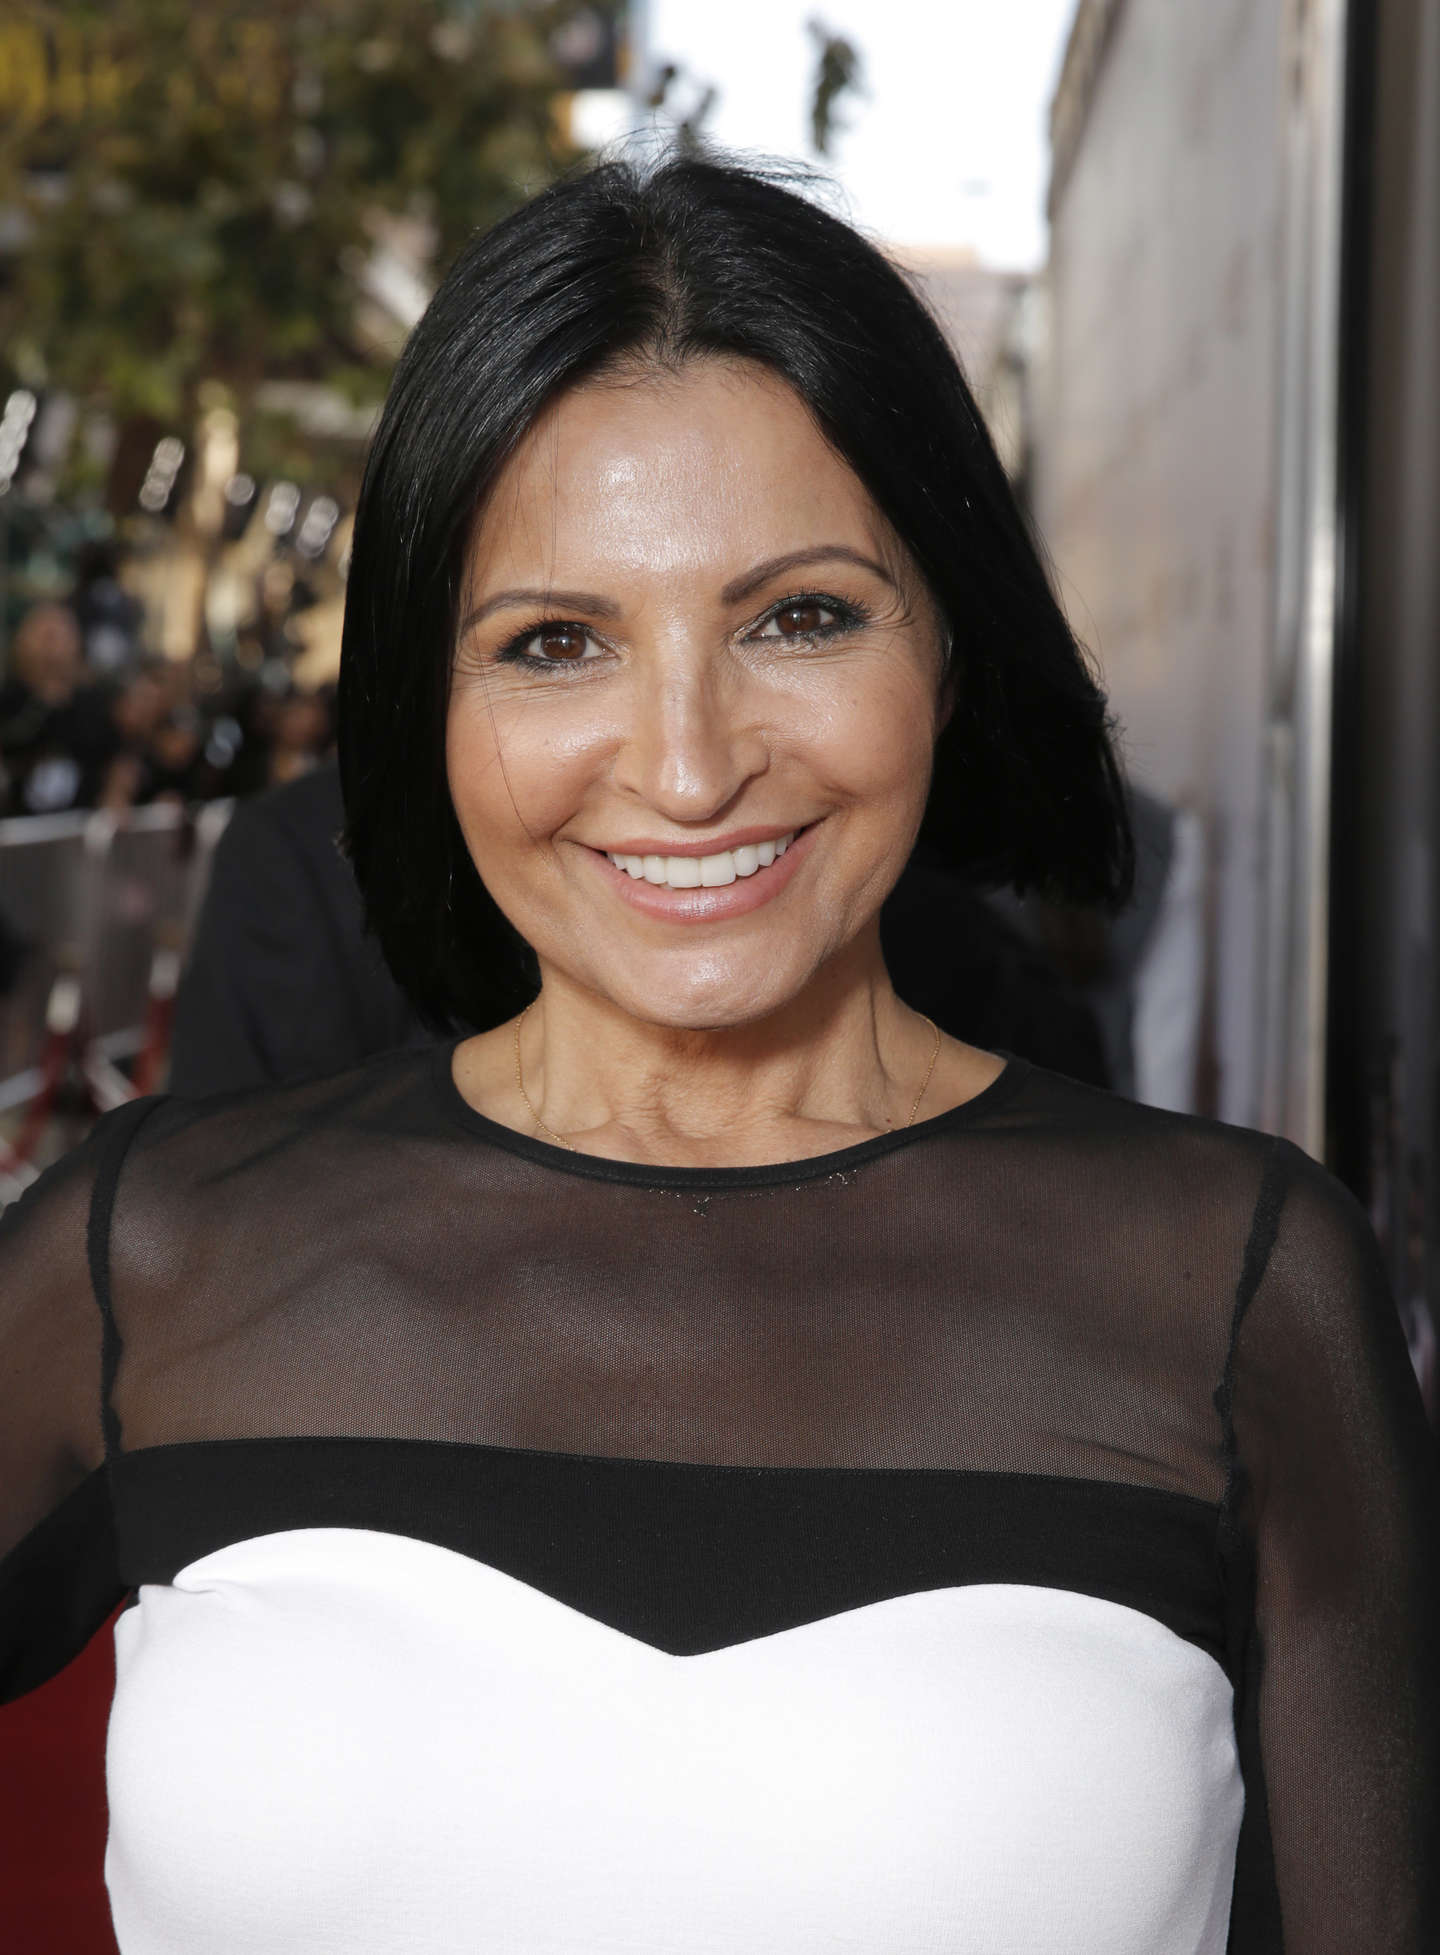 kathrine narducci robert ilerkathrine narducci instagram, kathrine narducci, kathrine narducci power, kathrine narducci twitter, kathrine narducci bio, kathrine narducci robert iler, kathrine narducci net worth, kathrine narducci husband, kathrine narducci facebook, kathrine narducci and 50 cent, kathrine narducci married, kathrine narducci nudography, kathrine narducci cleavage